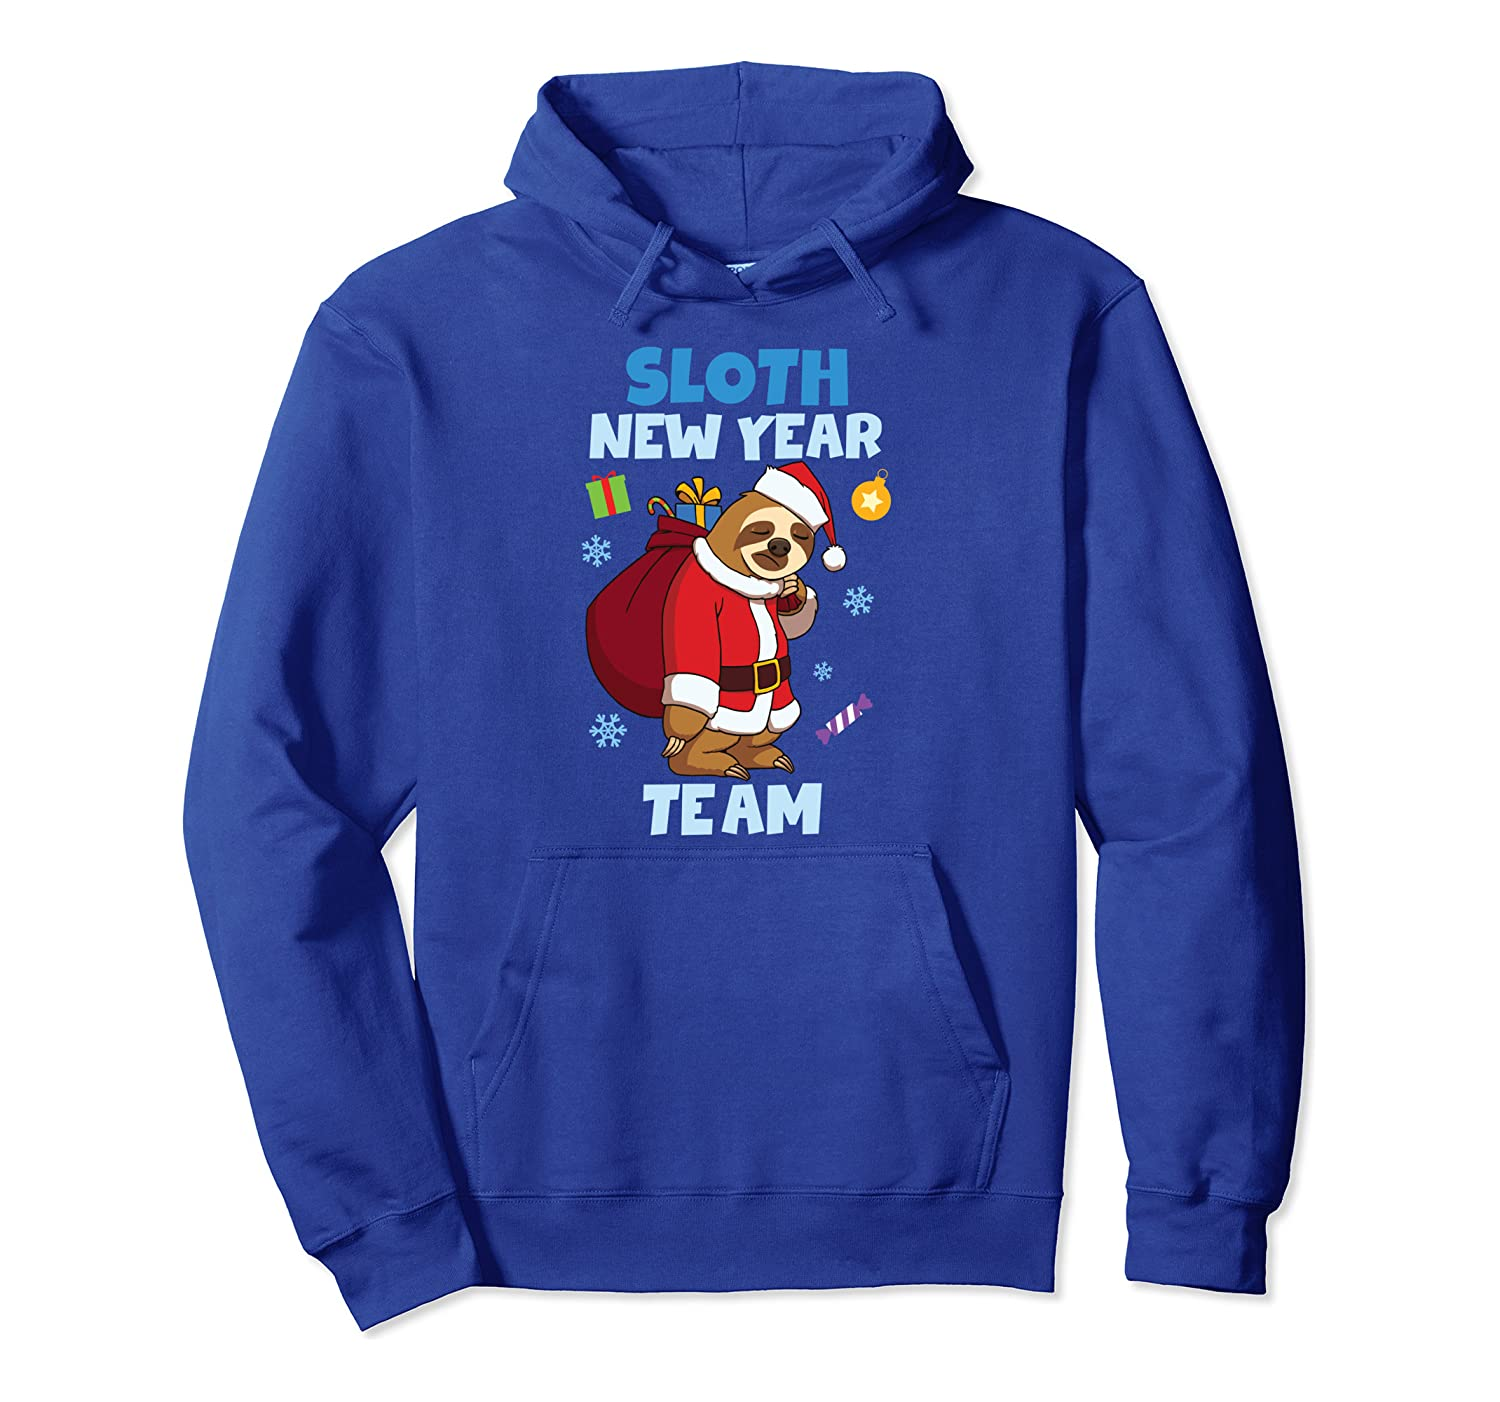 Sloth New Year Team Sloth Happy New Year 2020 Pullover Hoodie